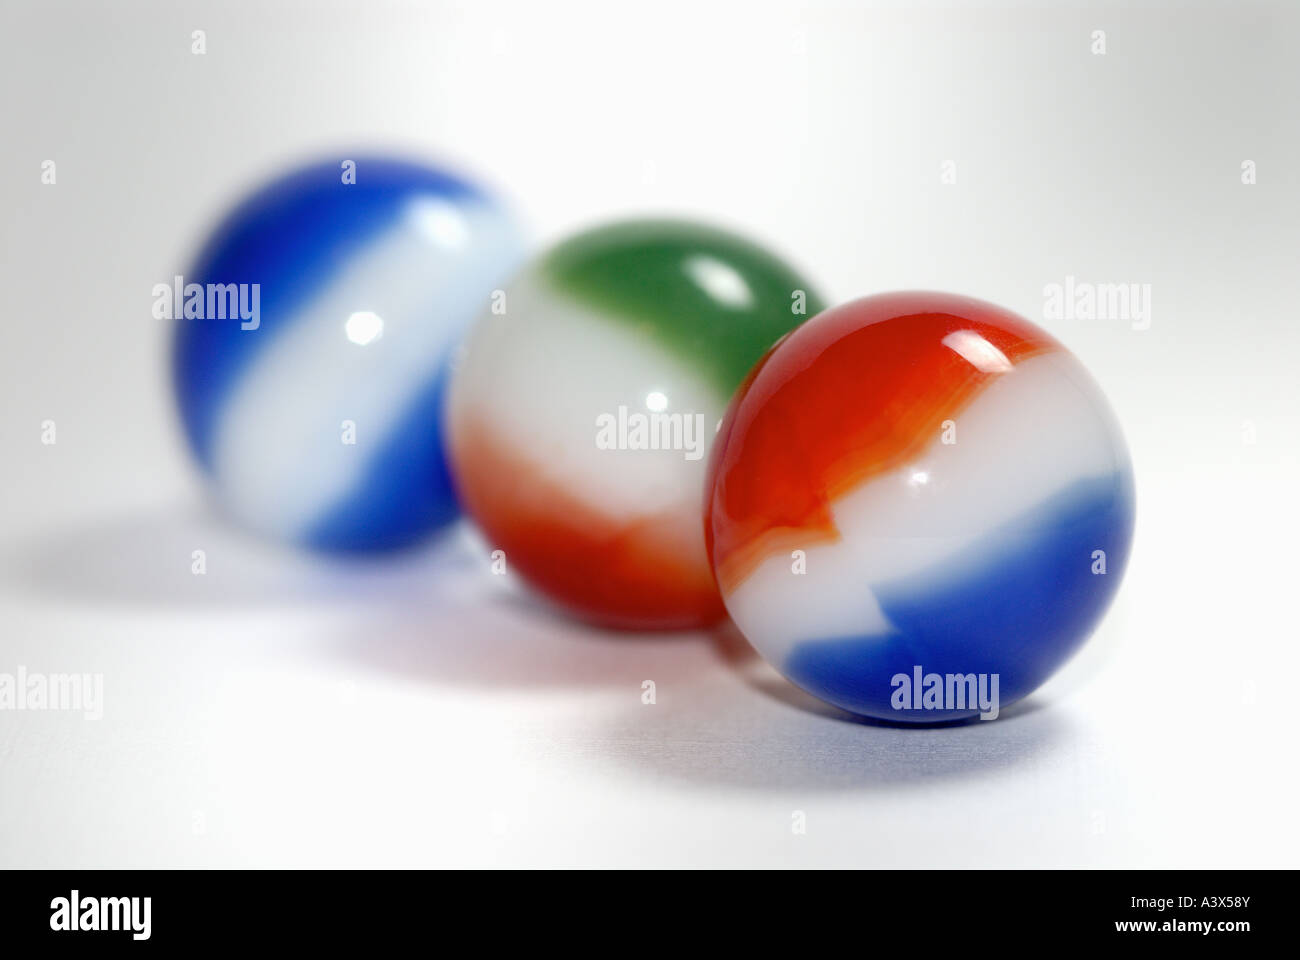 three marbles on a white surface Stock Photo